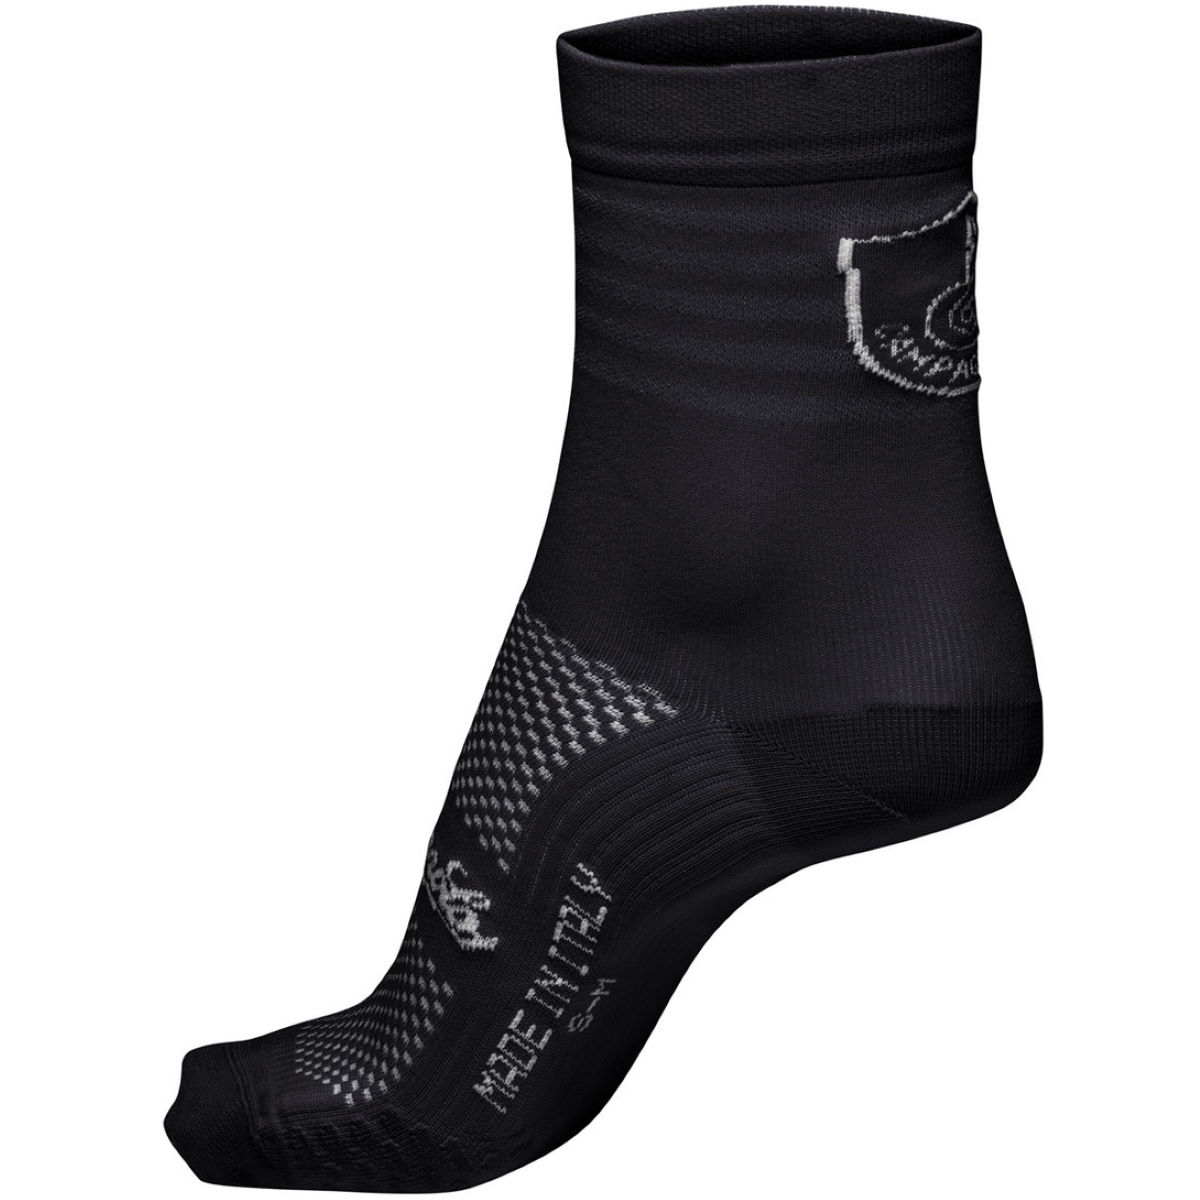 Campagnolo Litech Socks - L/XL Black | Cycle Socks